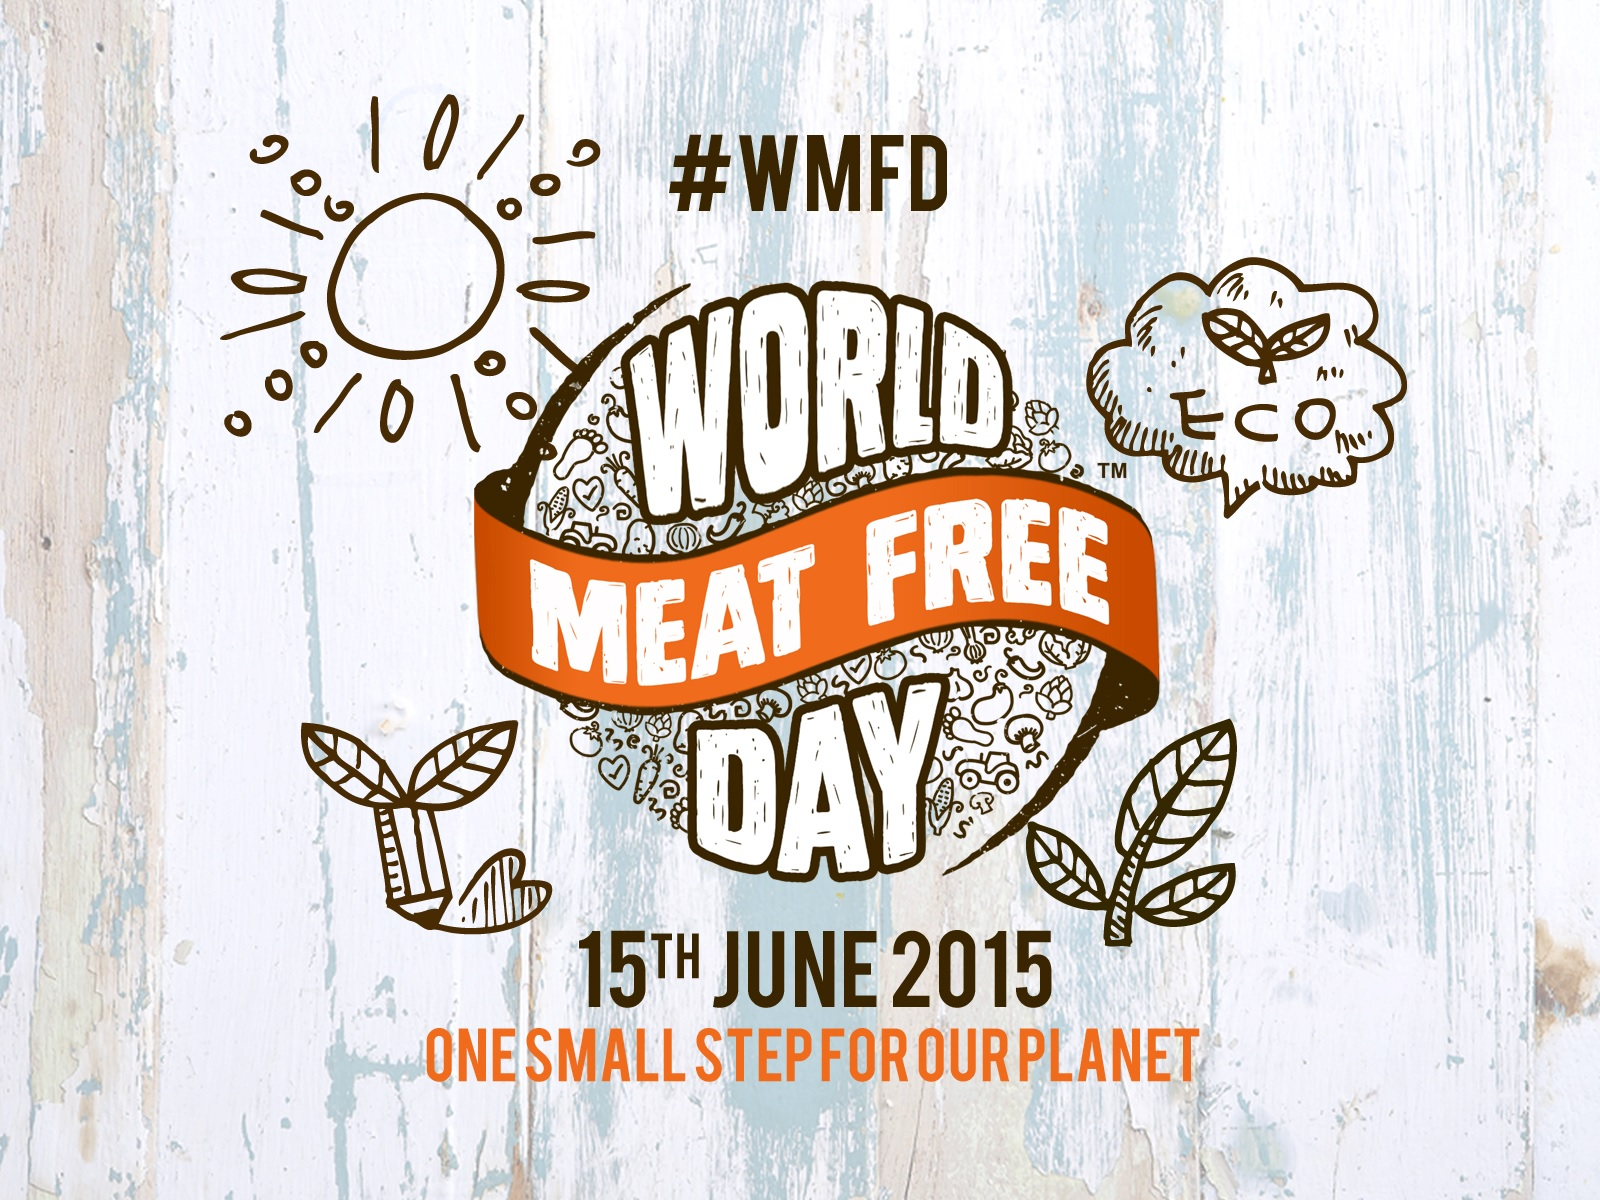 World Meat Free Day